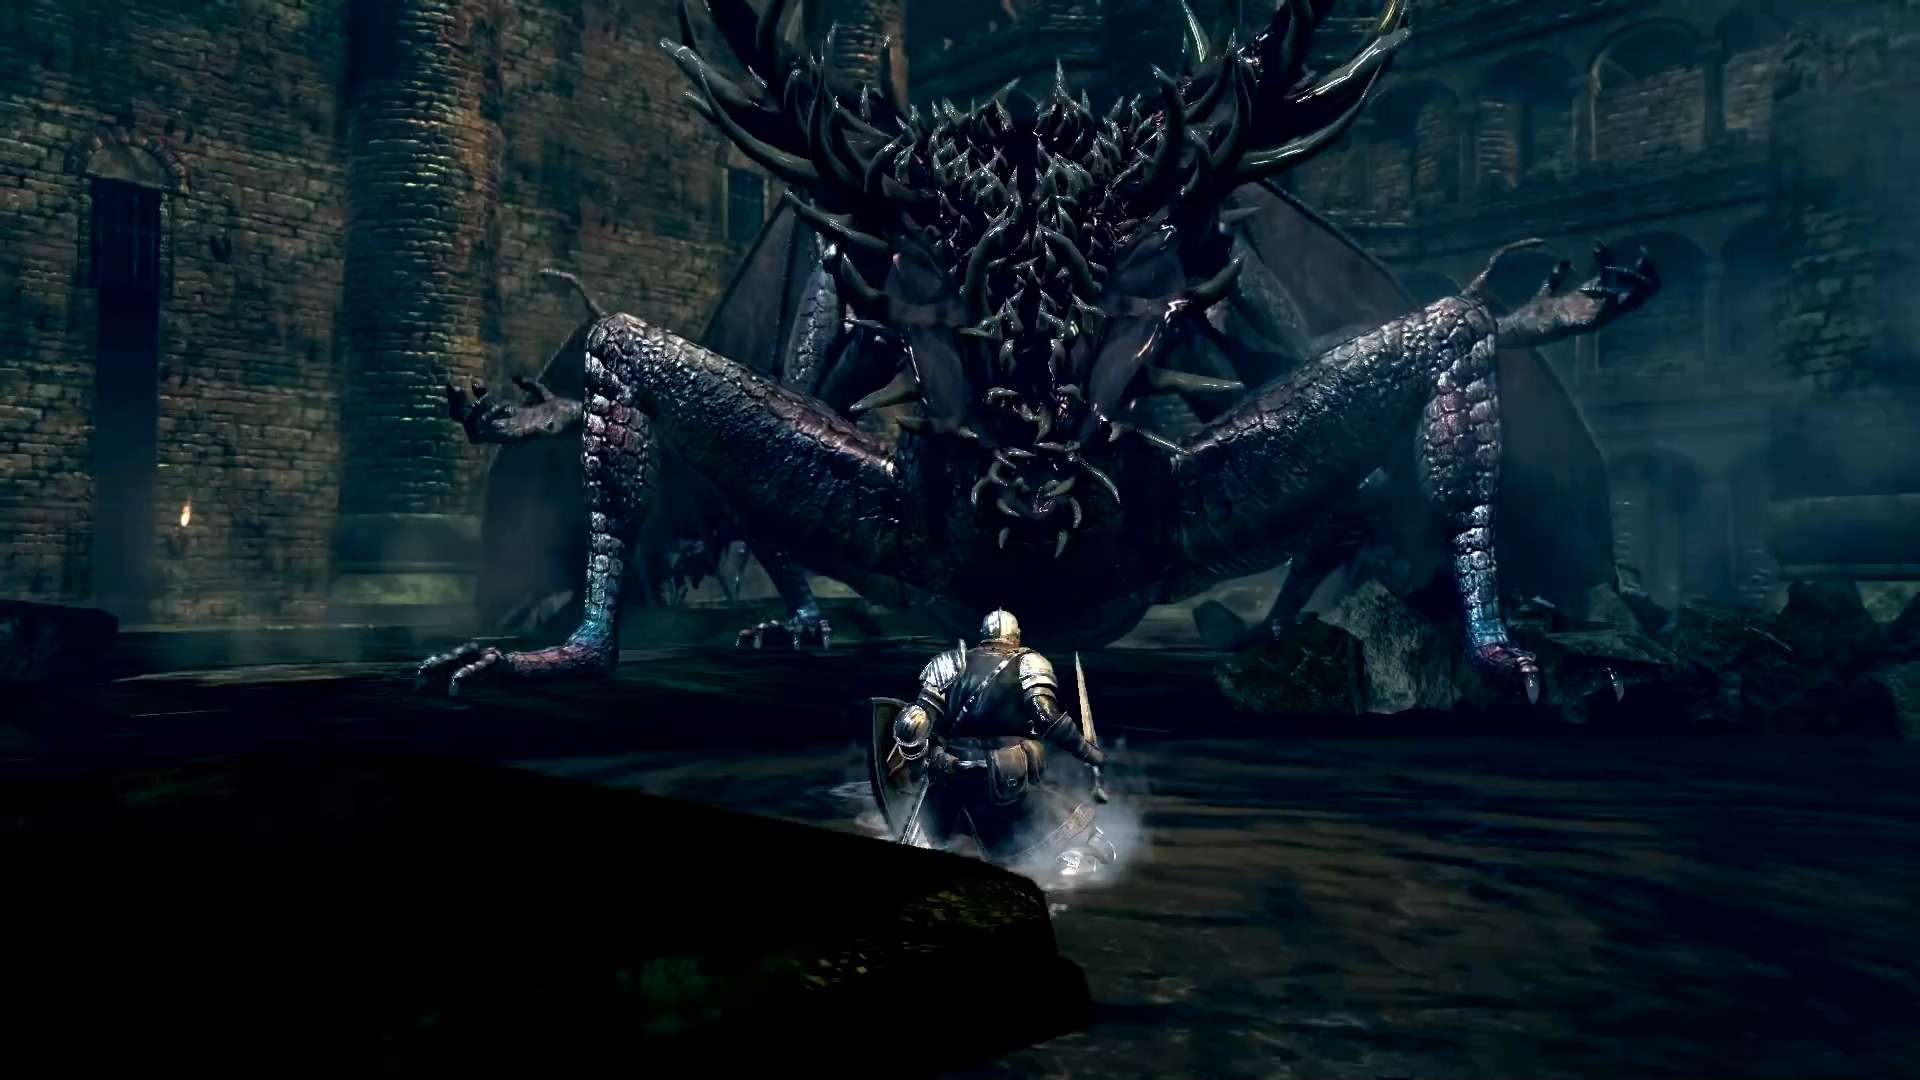 Dark Souls Remastered Network Test Coming To All Consoles